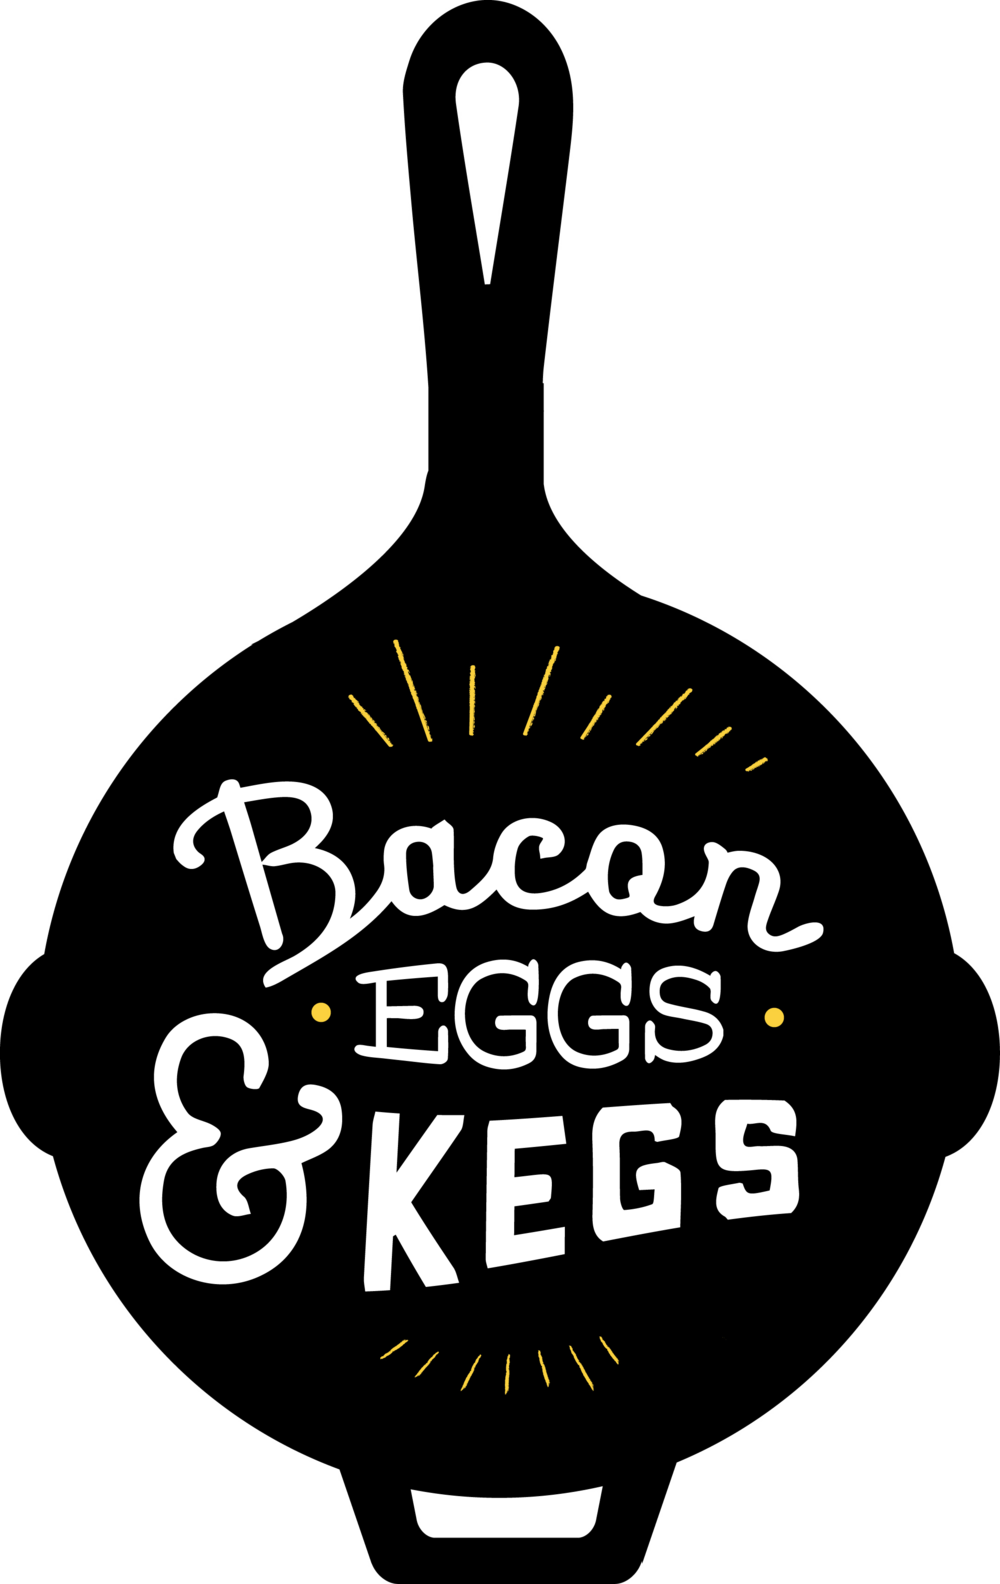 Bacon-Eggs-And-Kegs